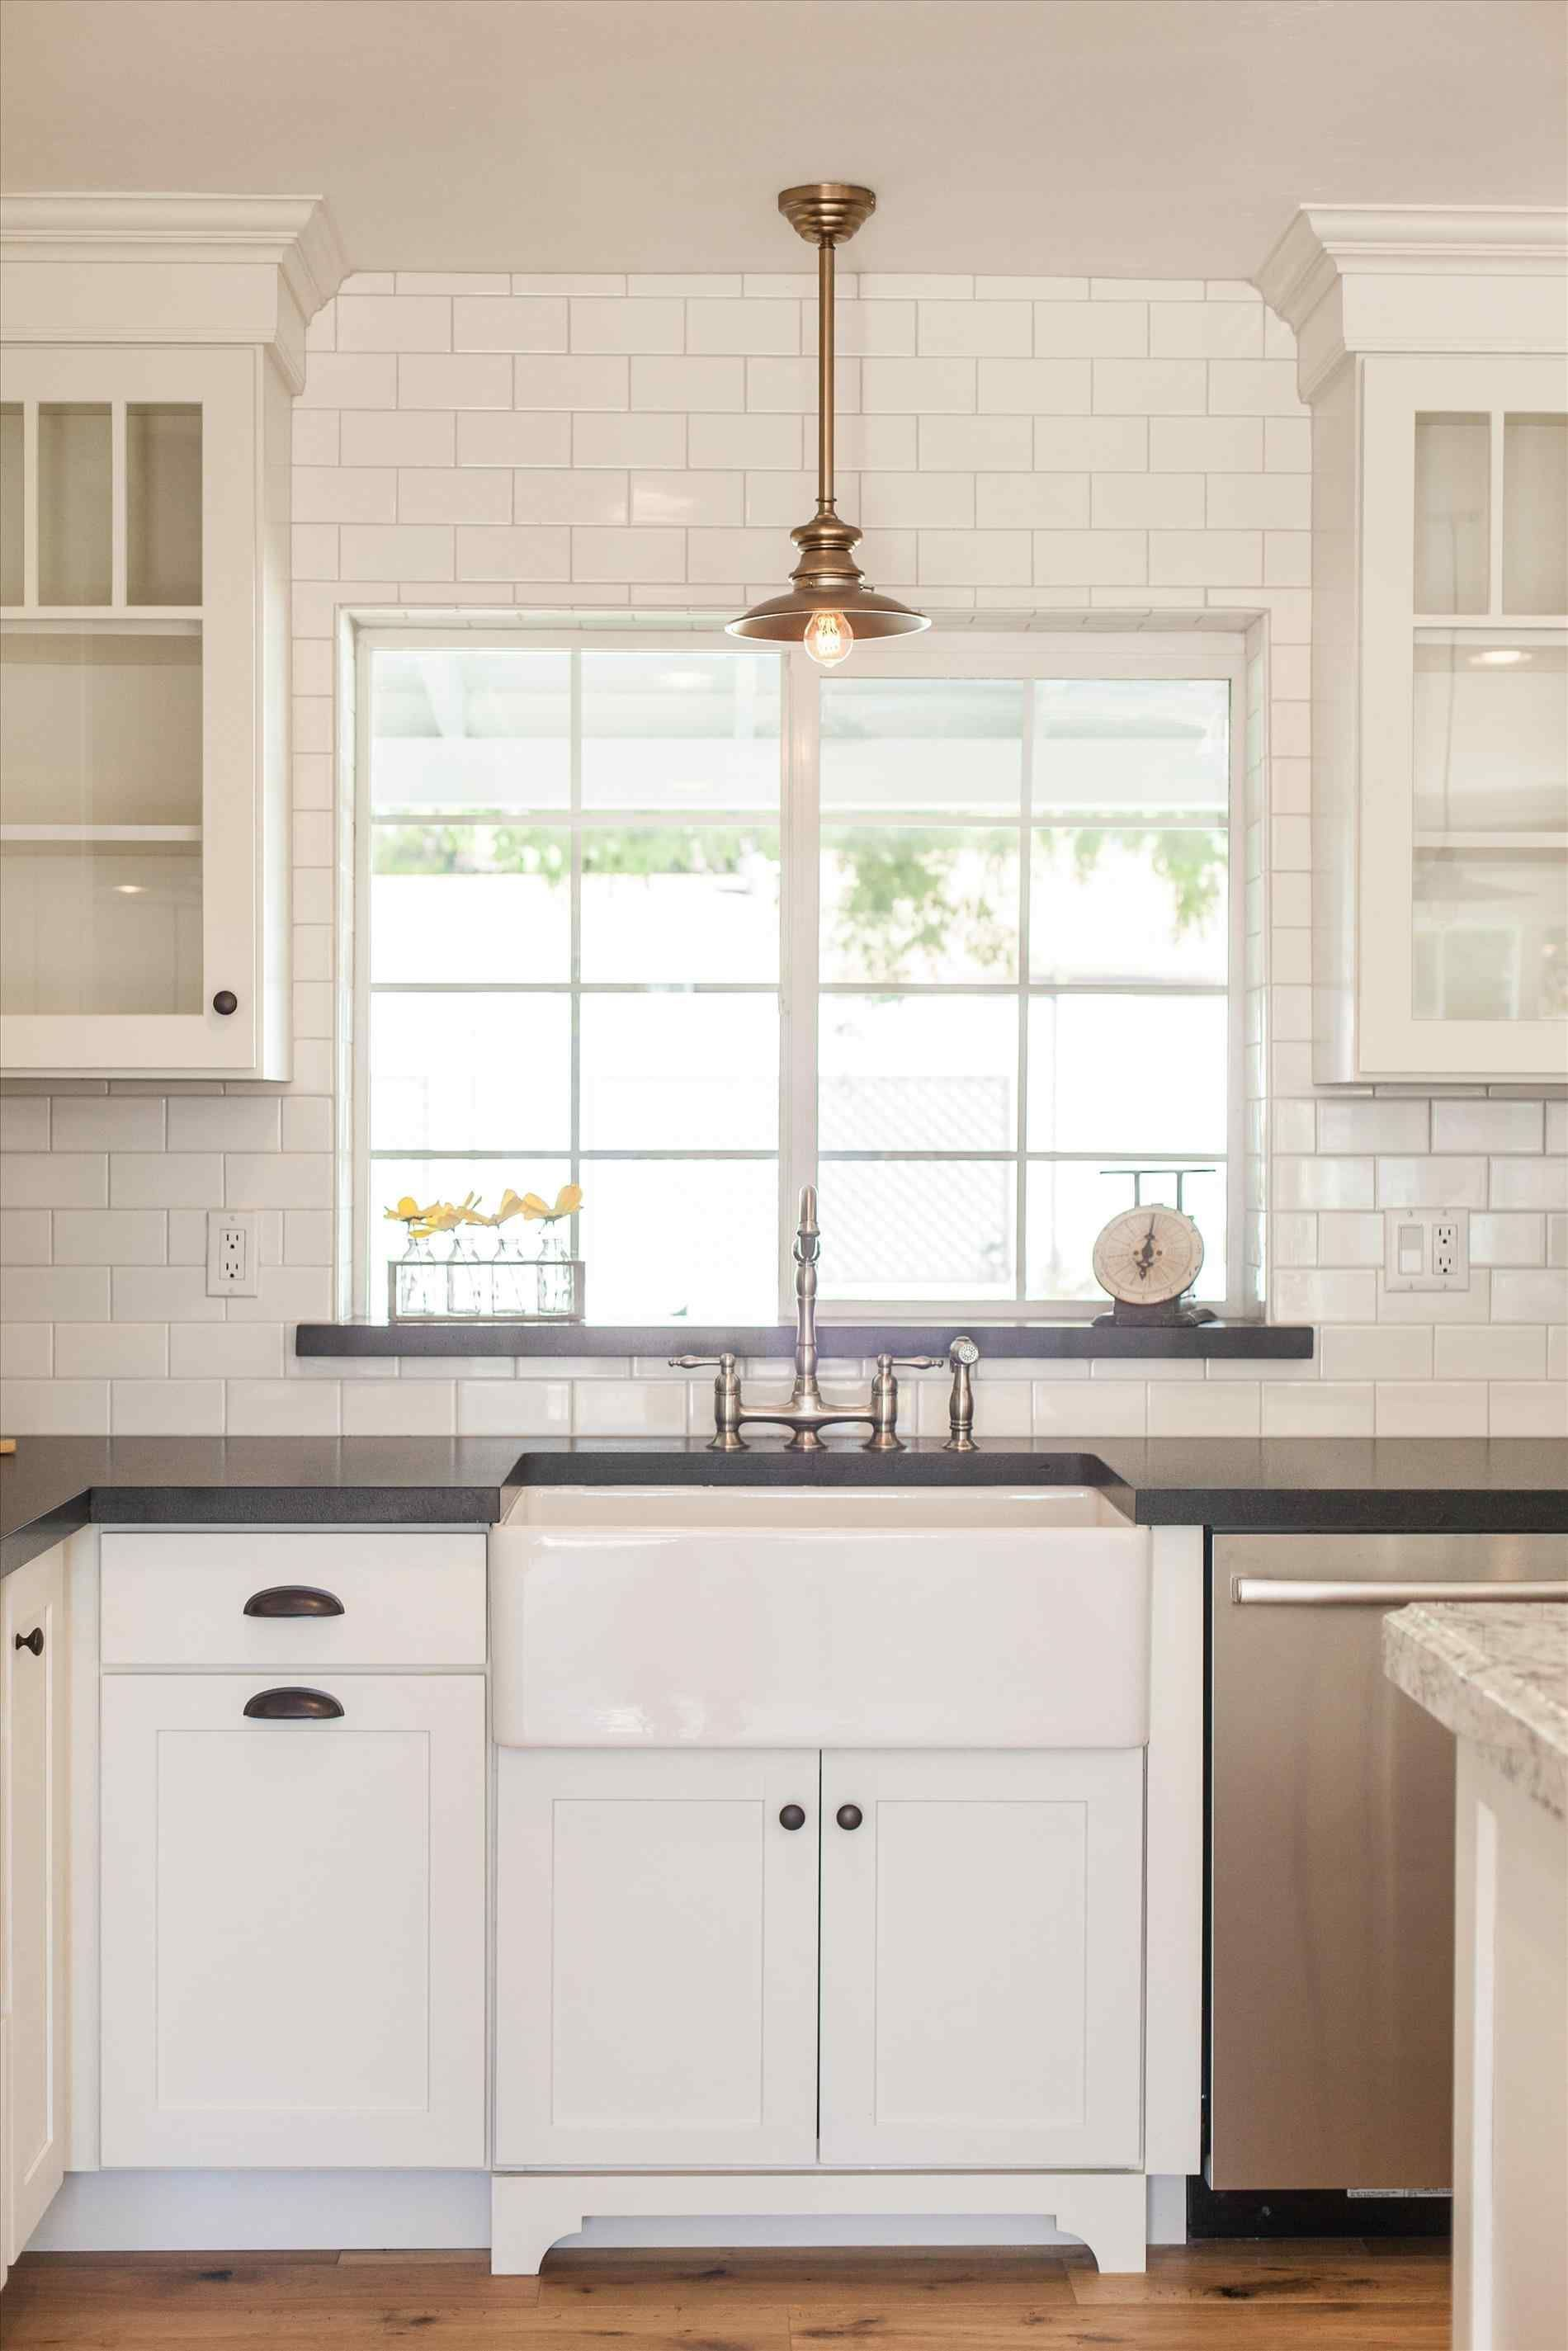 Tile Around Window In Kitchen Small Backsplash In 2020 Rustic